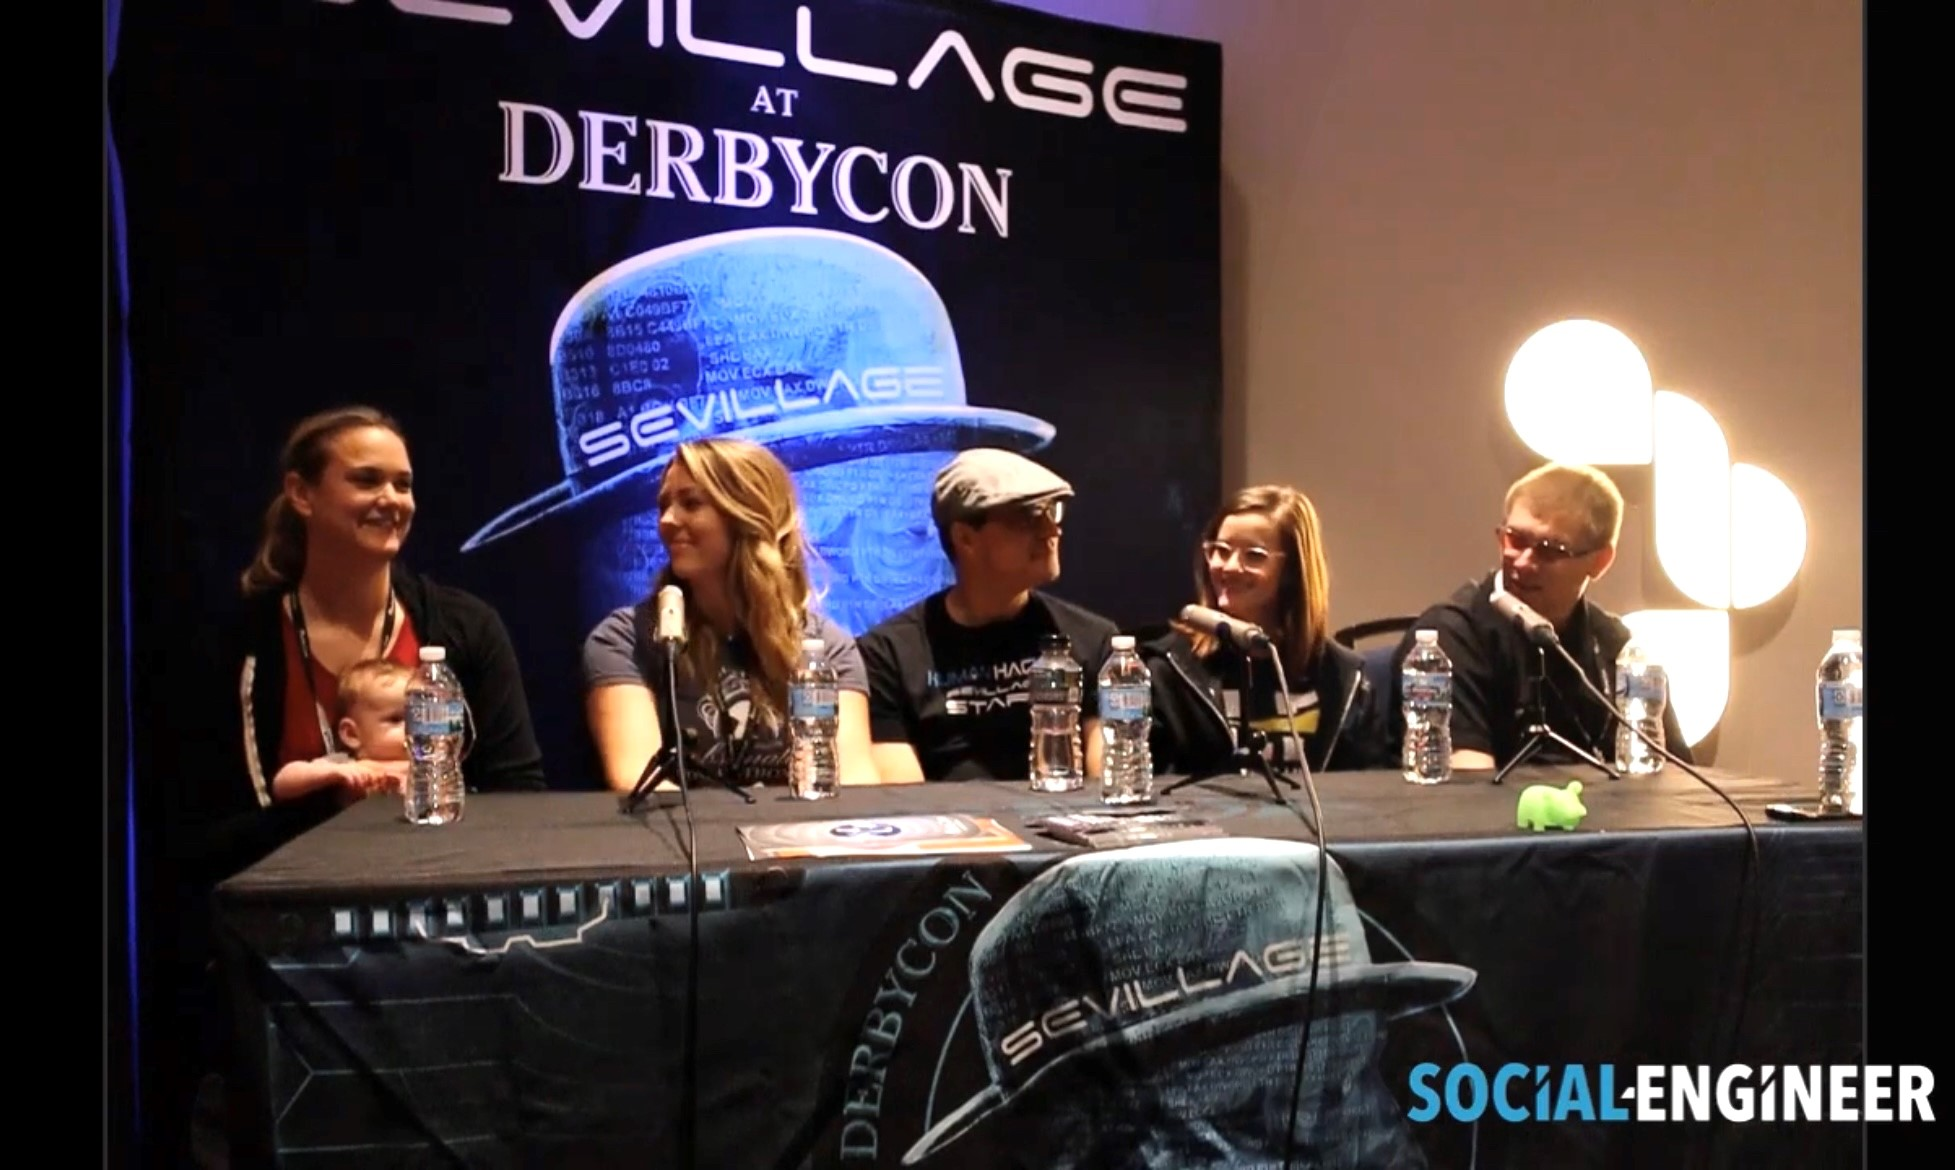 Vishing: Real vs. Competition, What's the Difference – DerbyCon 8 Panel